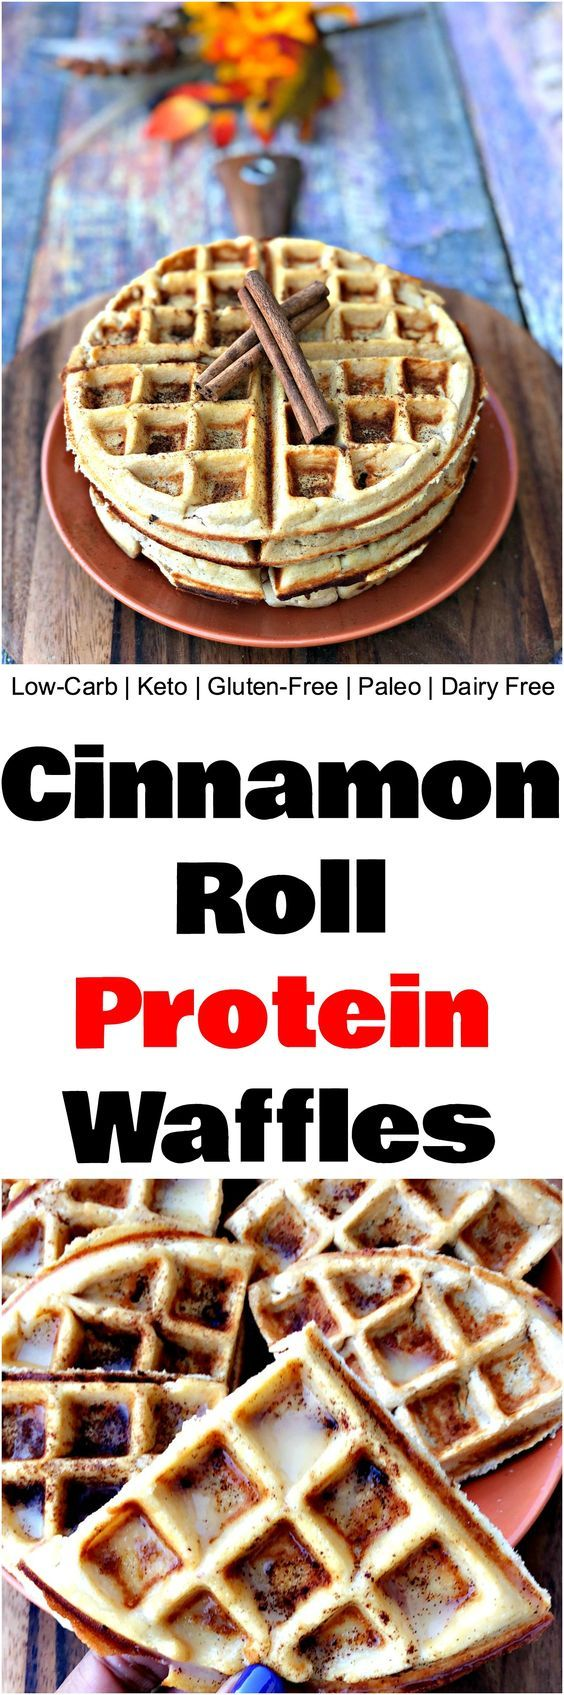 Easy LowCarb GlutenFree Cinnamon Roll Protein Waffles is